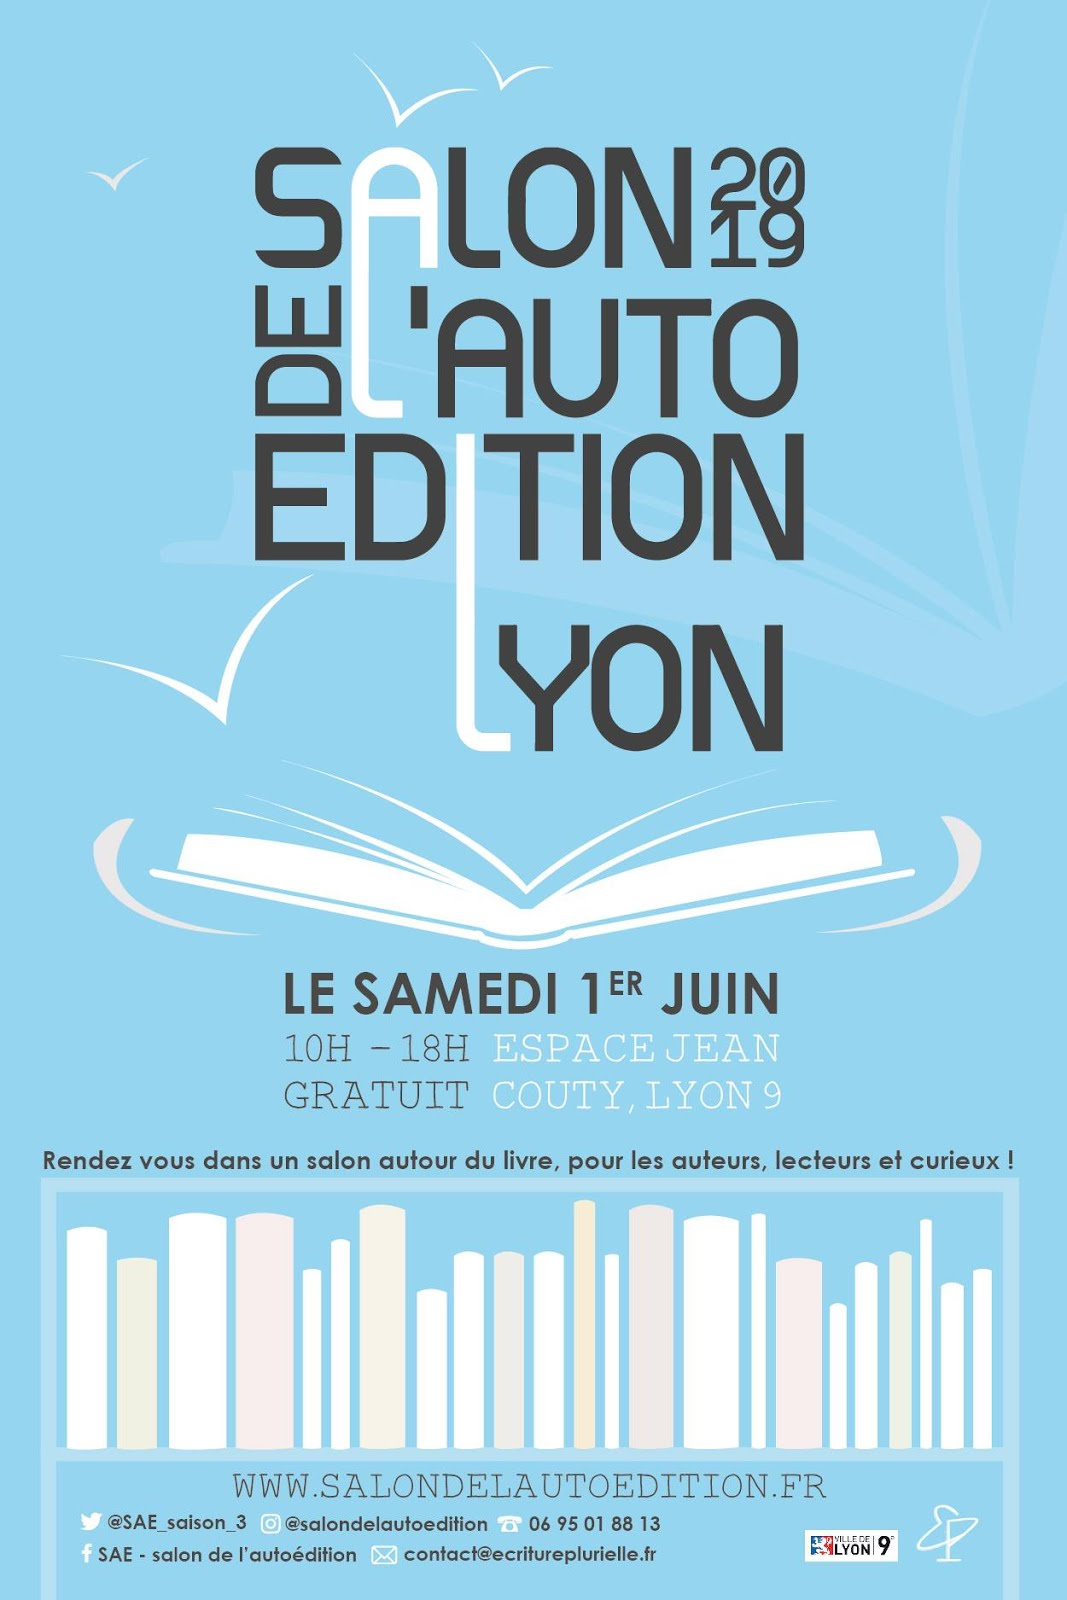 Salon de l'autoédition